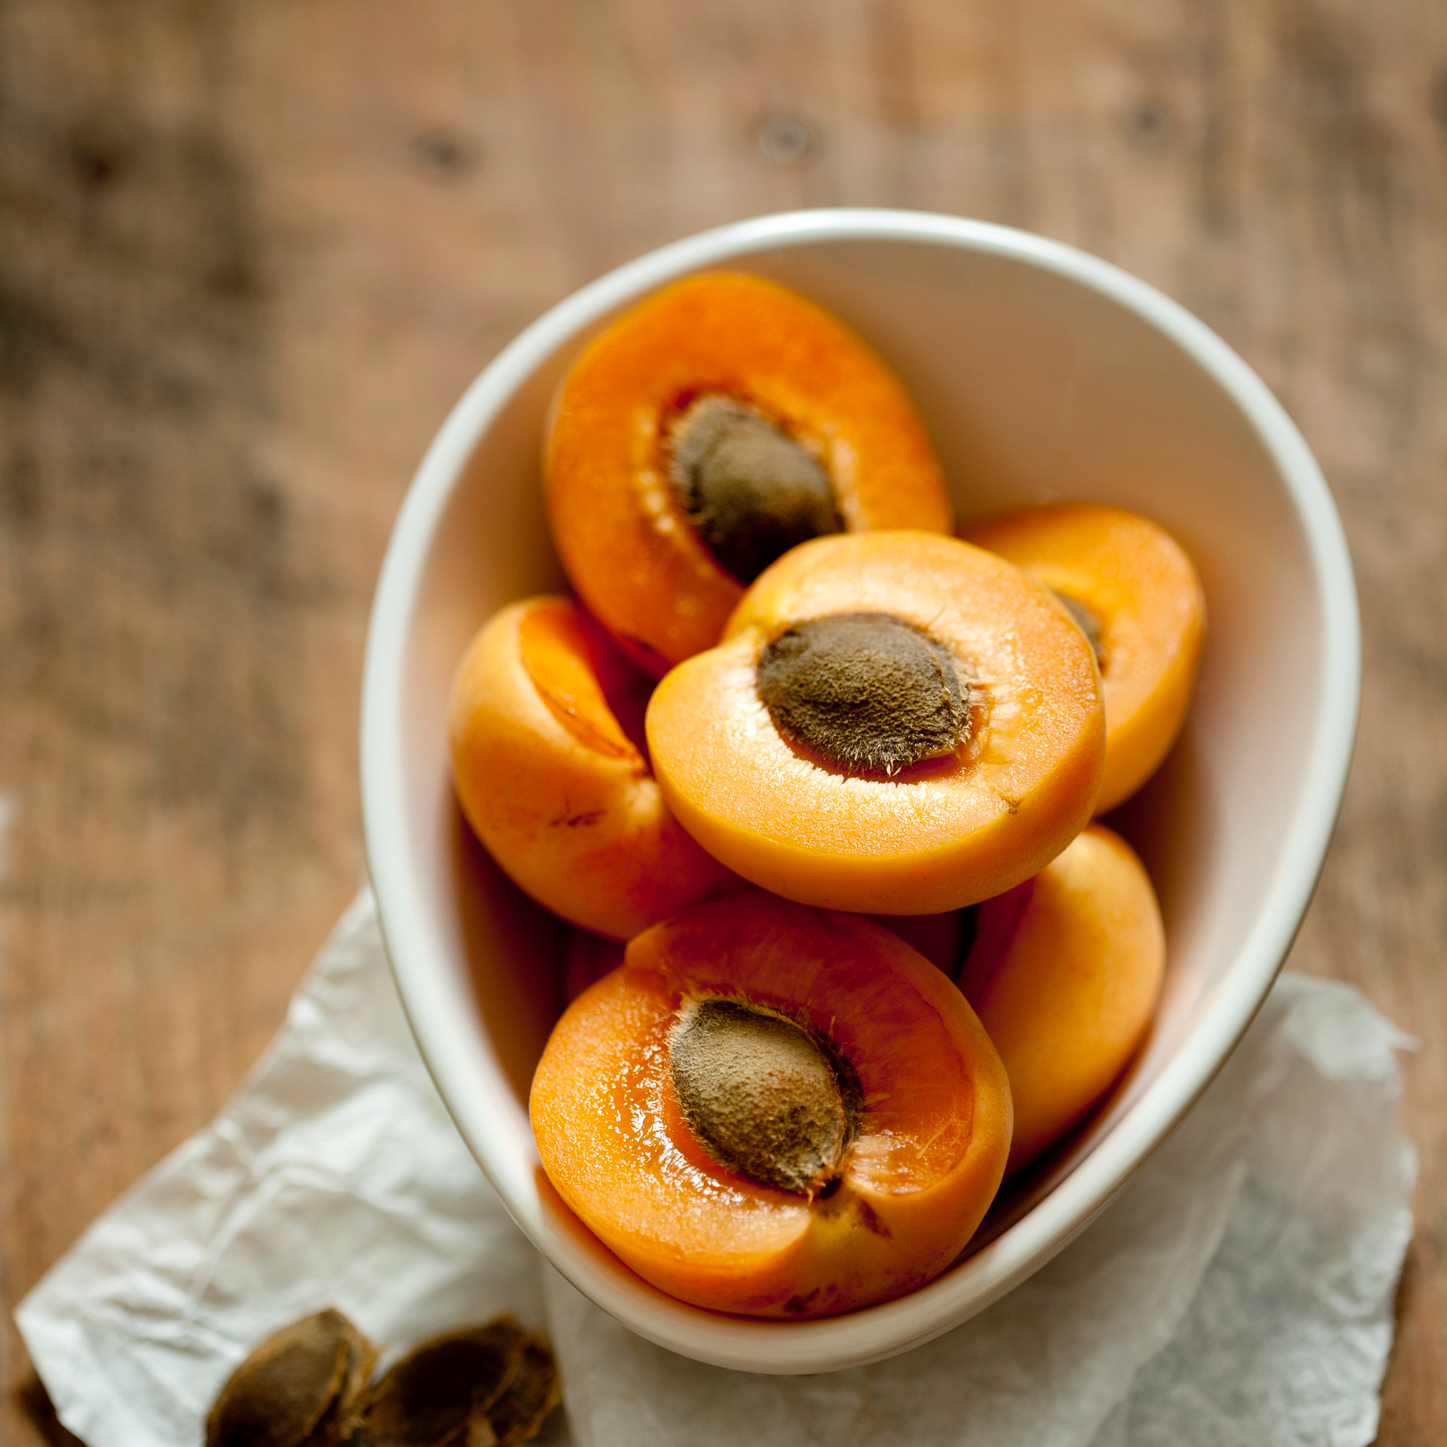 A bowl of halved apricots.